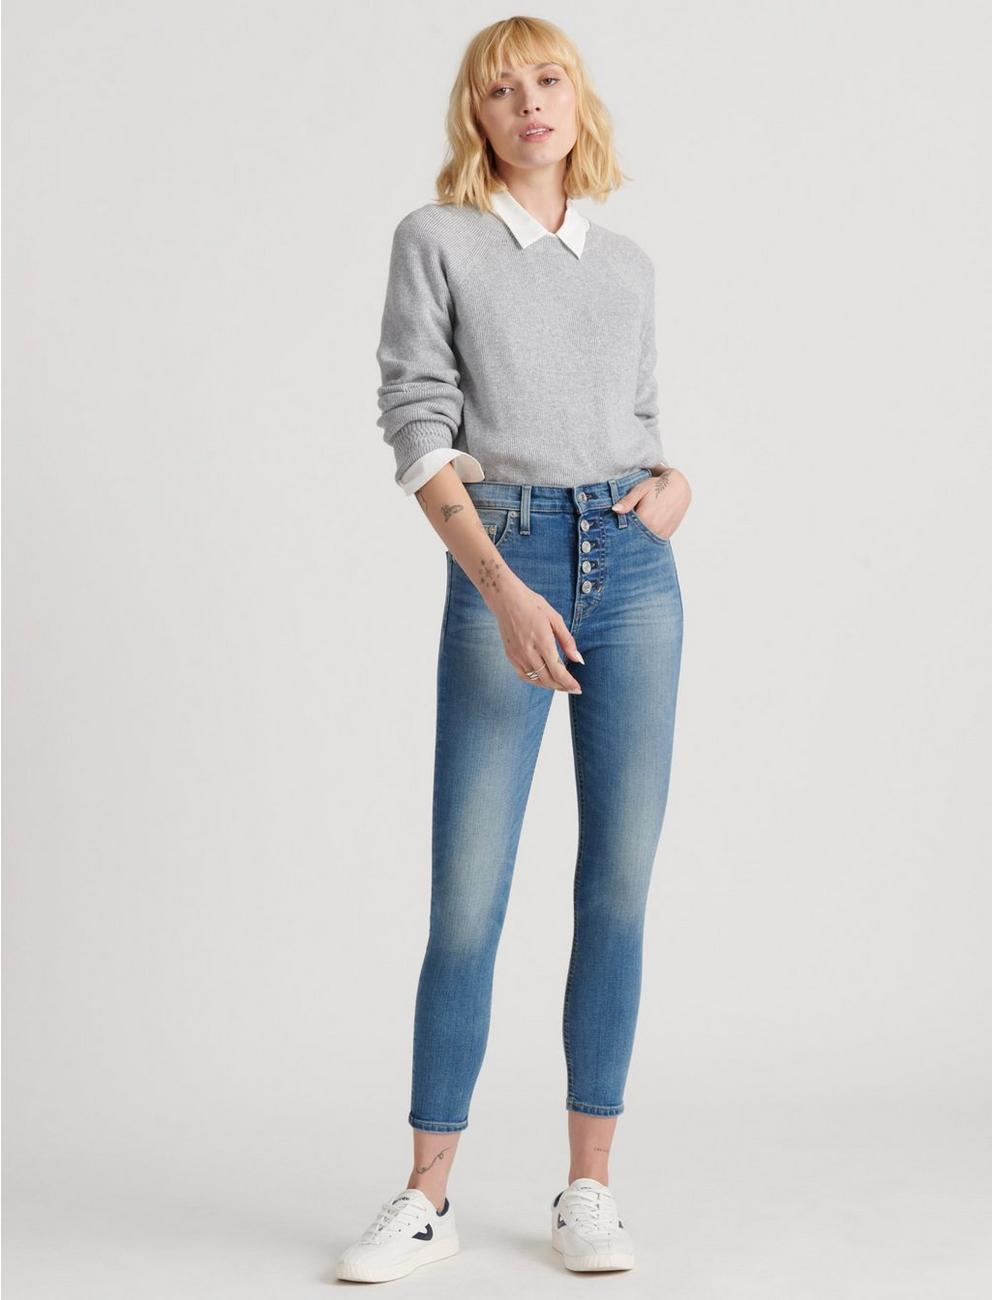 HIGH RISE BRIDGETTE SKINNY JEAN, COLE